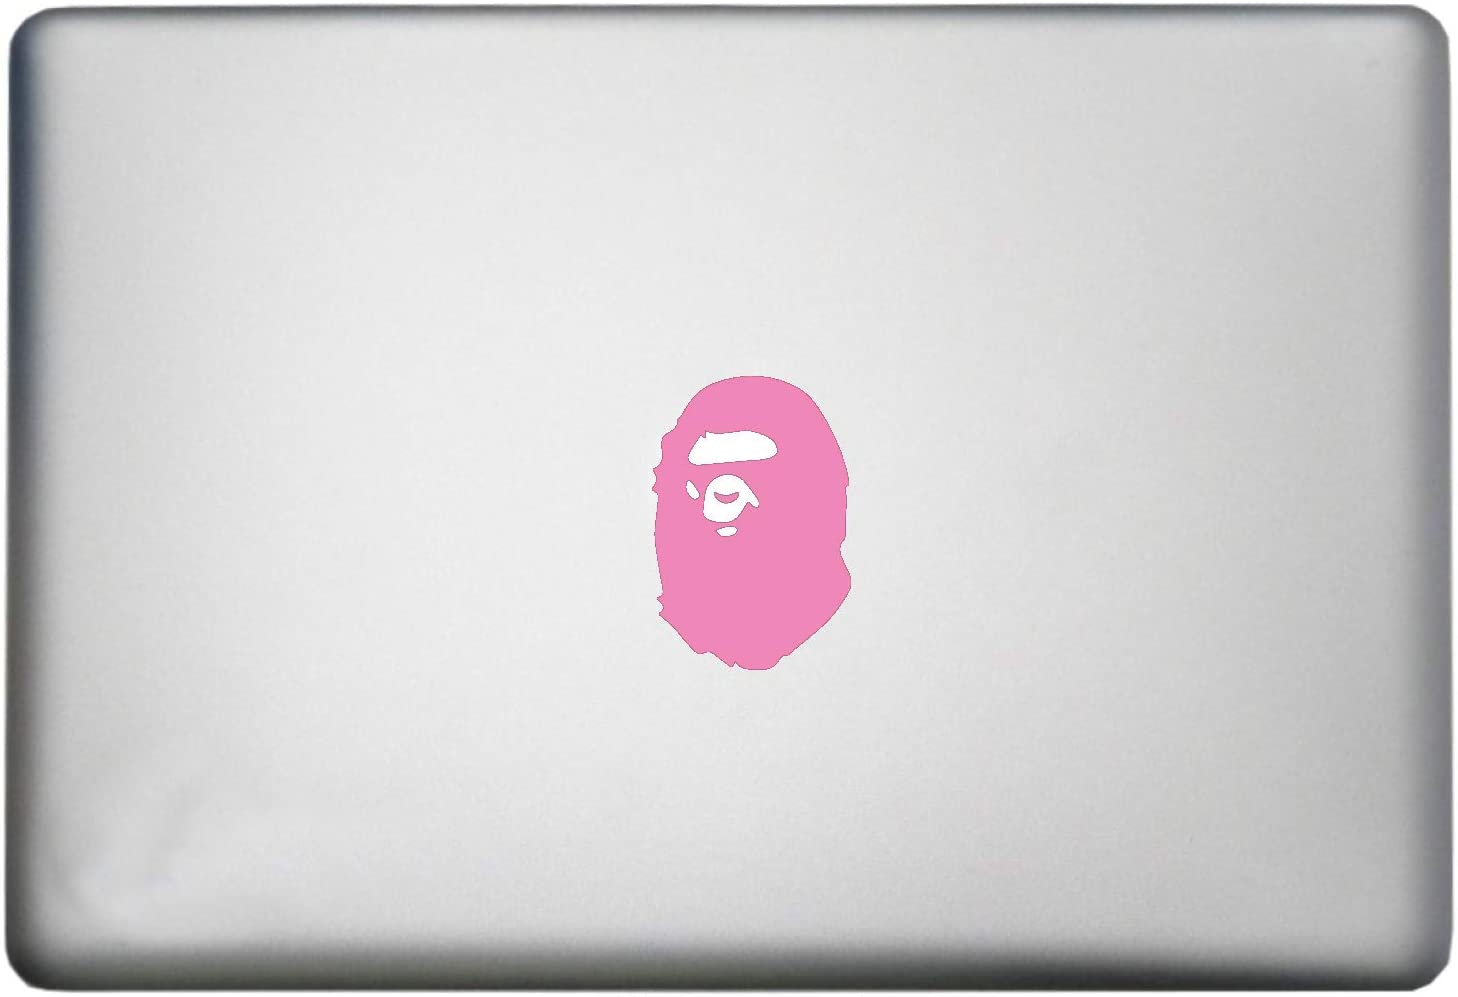 Gorilla Bape Ape Sticker MacBook Decal is a Bathing Ape Woodland Animals Decal. Laptop Sizes 11, 12, 13 and 15 inch. Looks Great with Your Zoo Animals Theme. Many Colors-Soft Pink